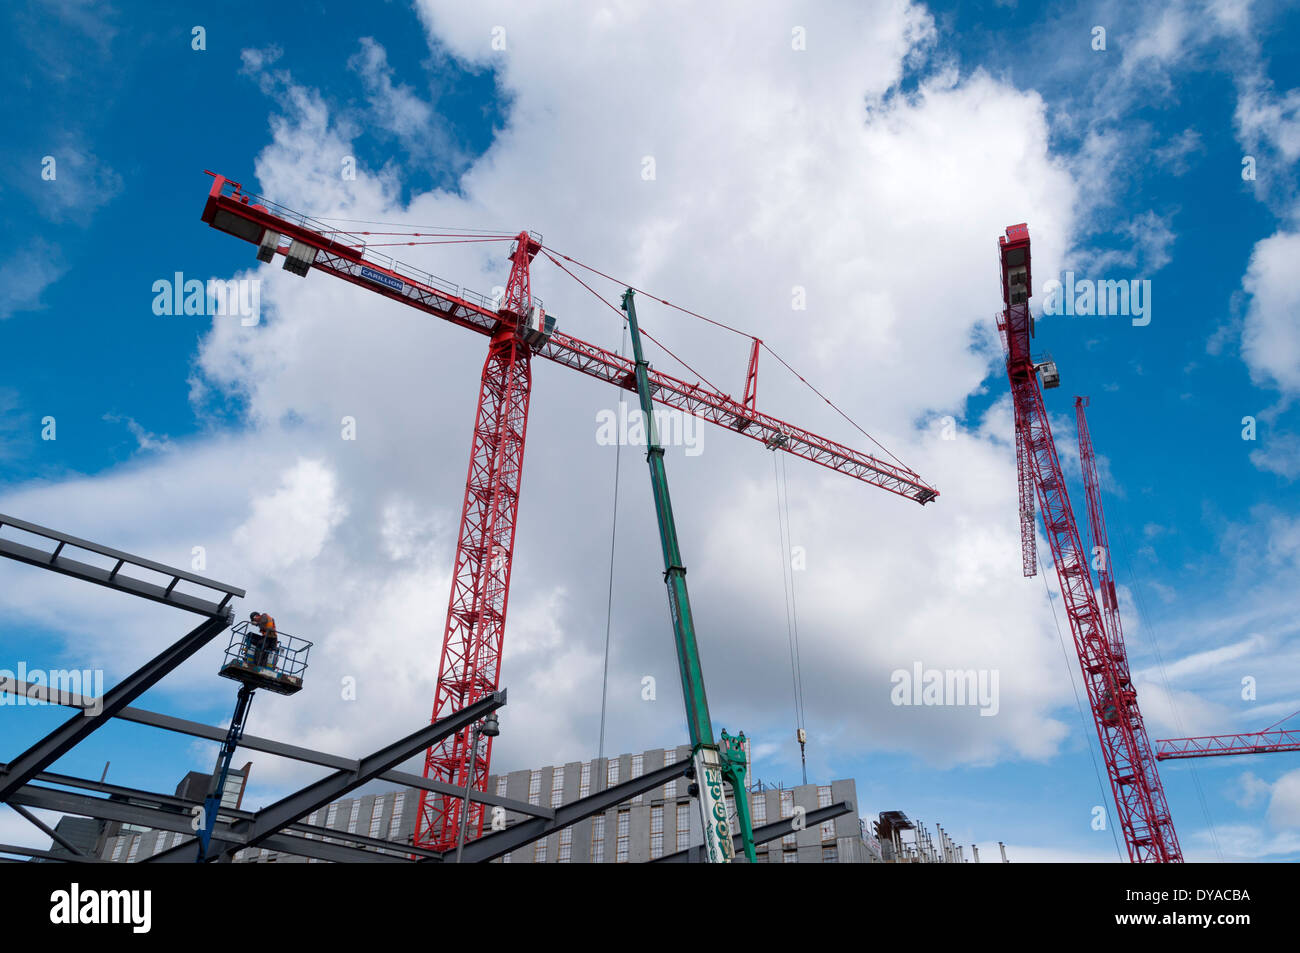 Steel erector standing on an access platform, and tower cranes on a construction site, First Street, Manchester, England, UK - Stock Image